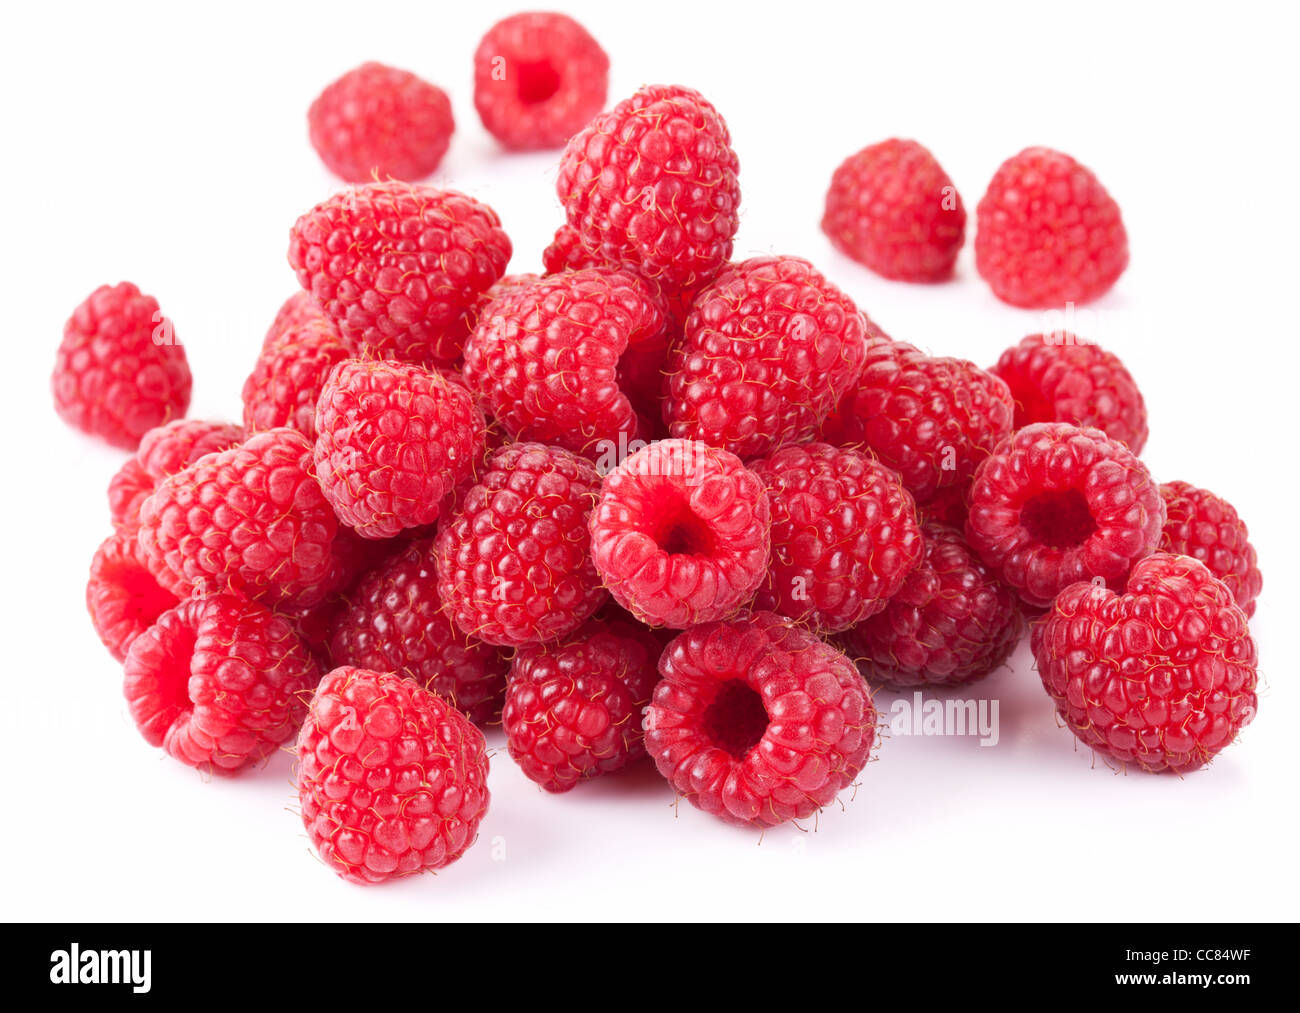 Ripe raspberries isolated on a white background. - Stock Image